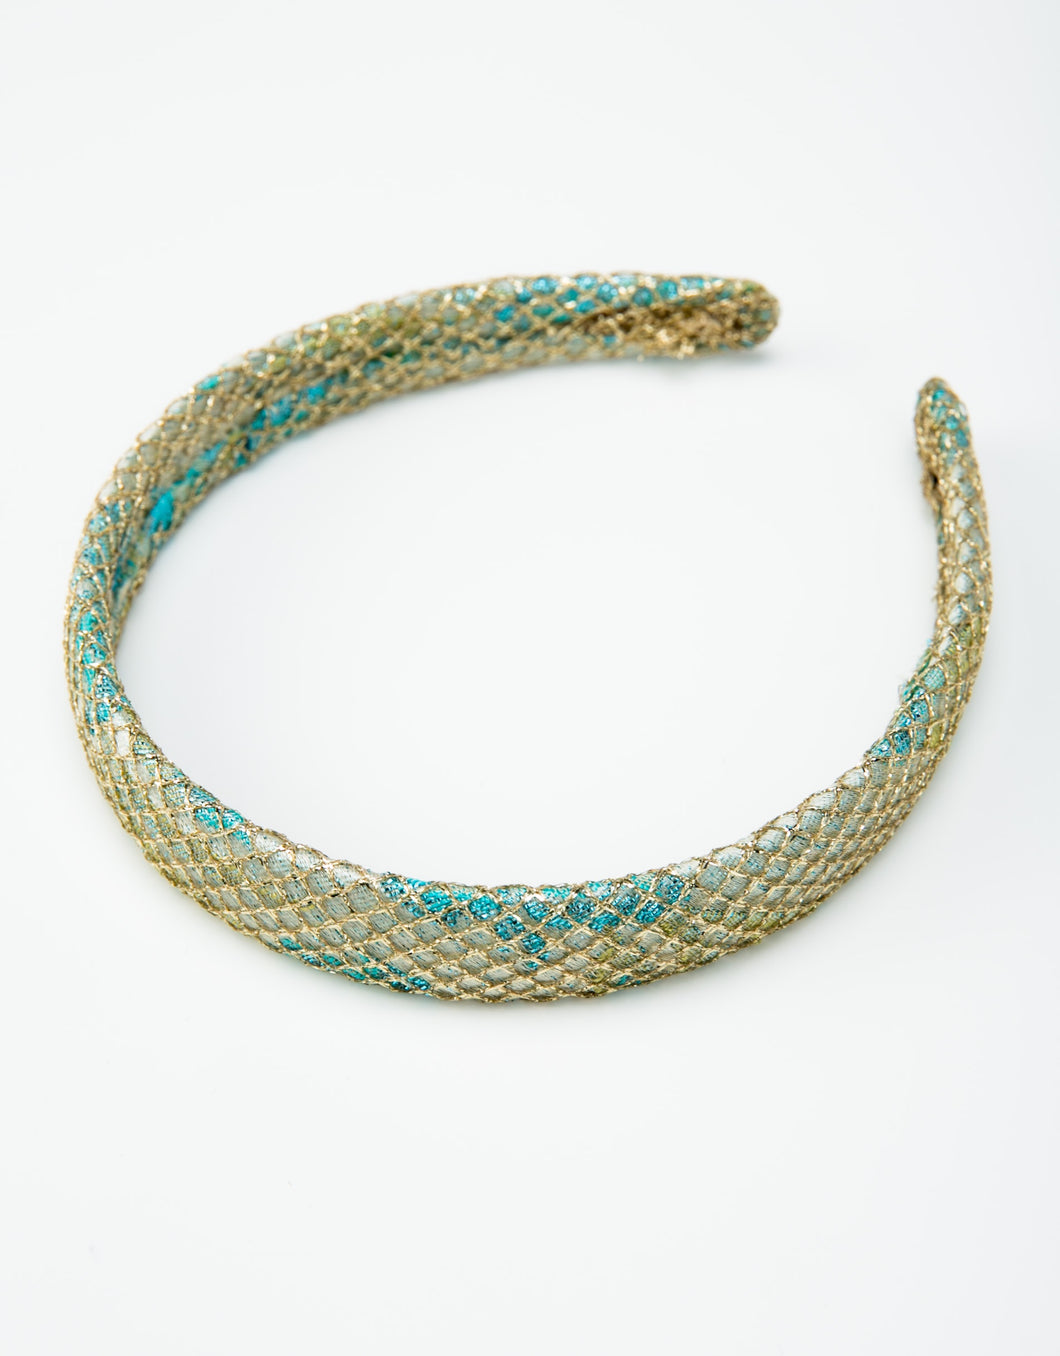 Gold and blue brocade headband with gold netting overlay